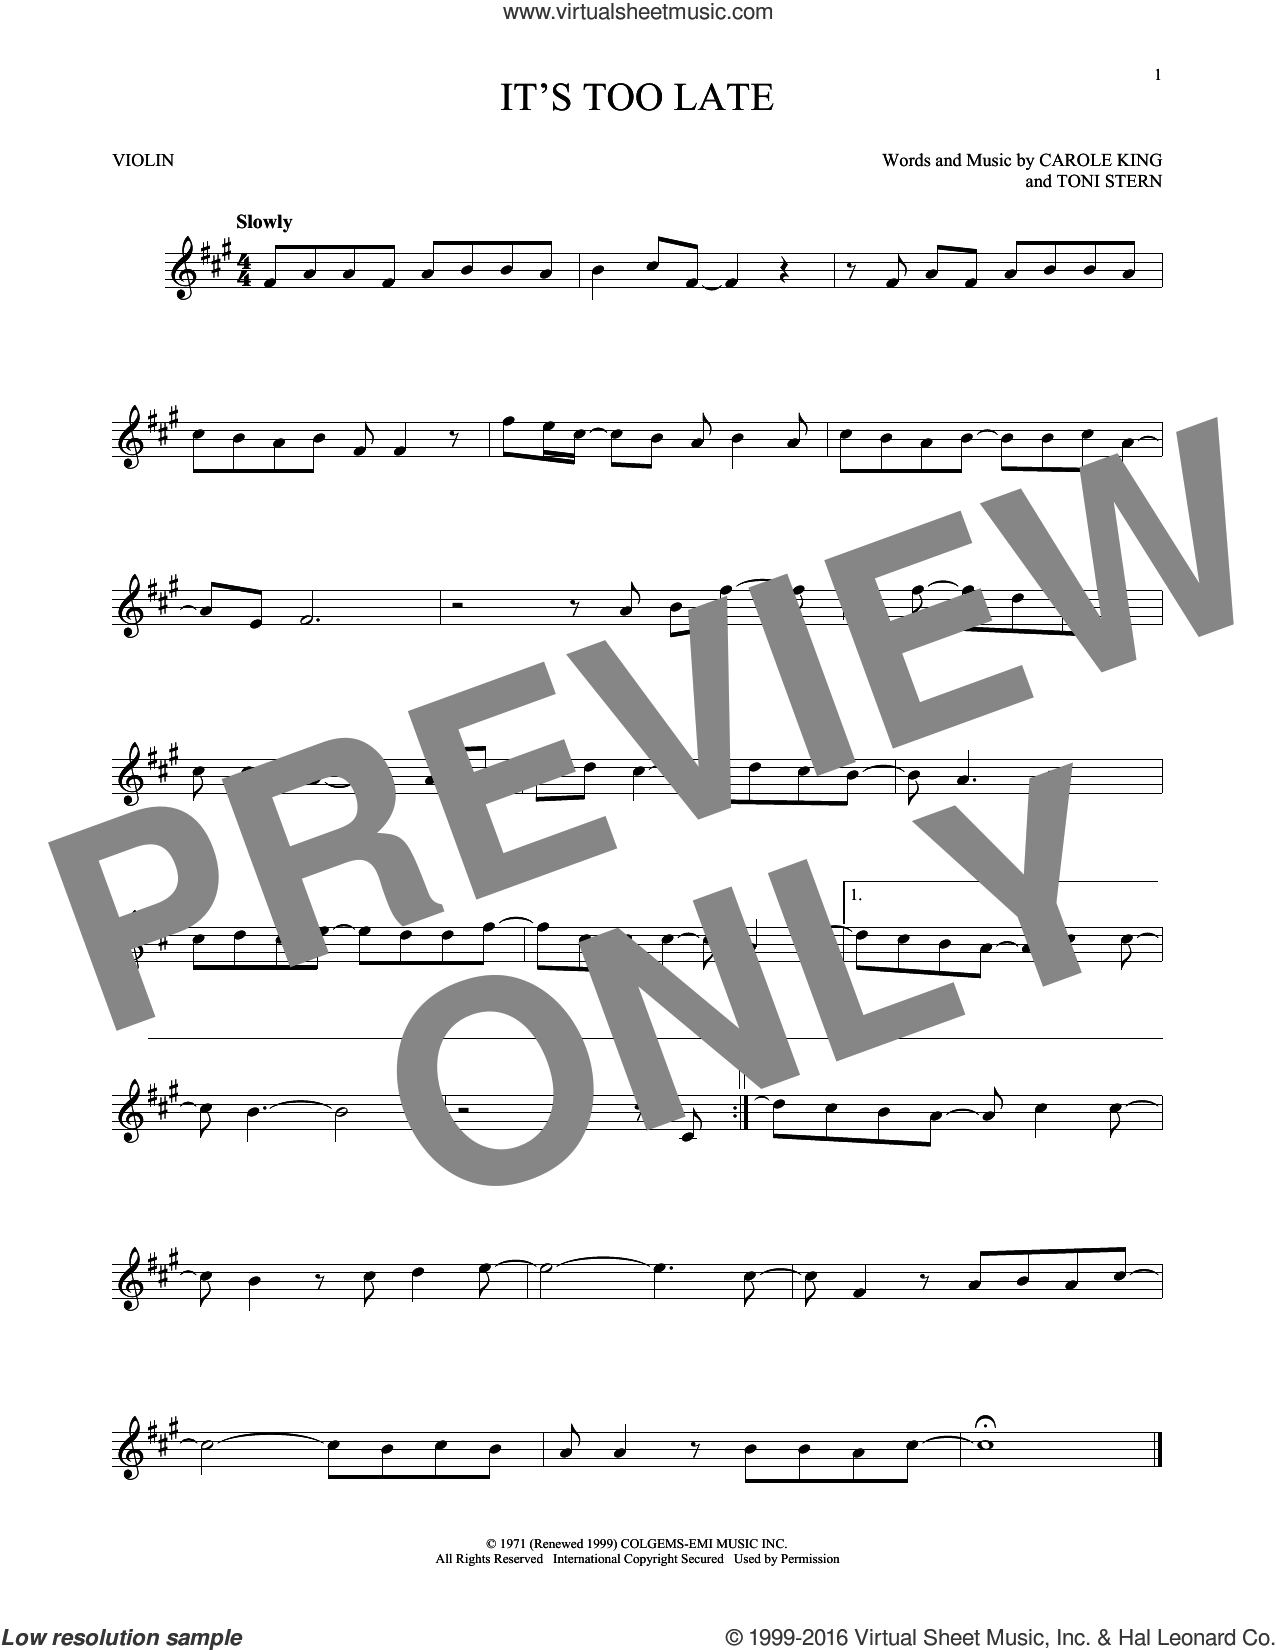 It's Too Late sheet music for violin solo by Carole King, Gloria Estefan and Toni Stern, intermediate skill level